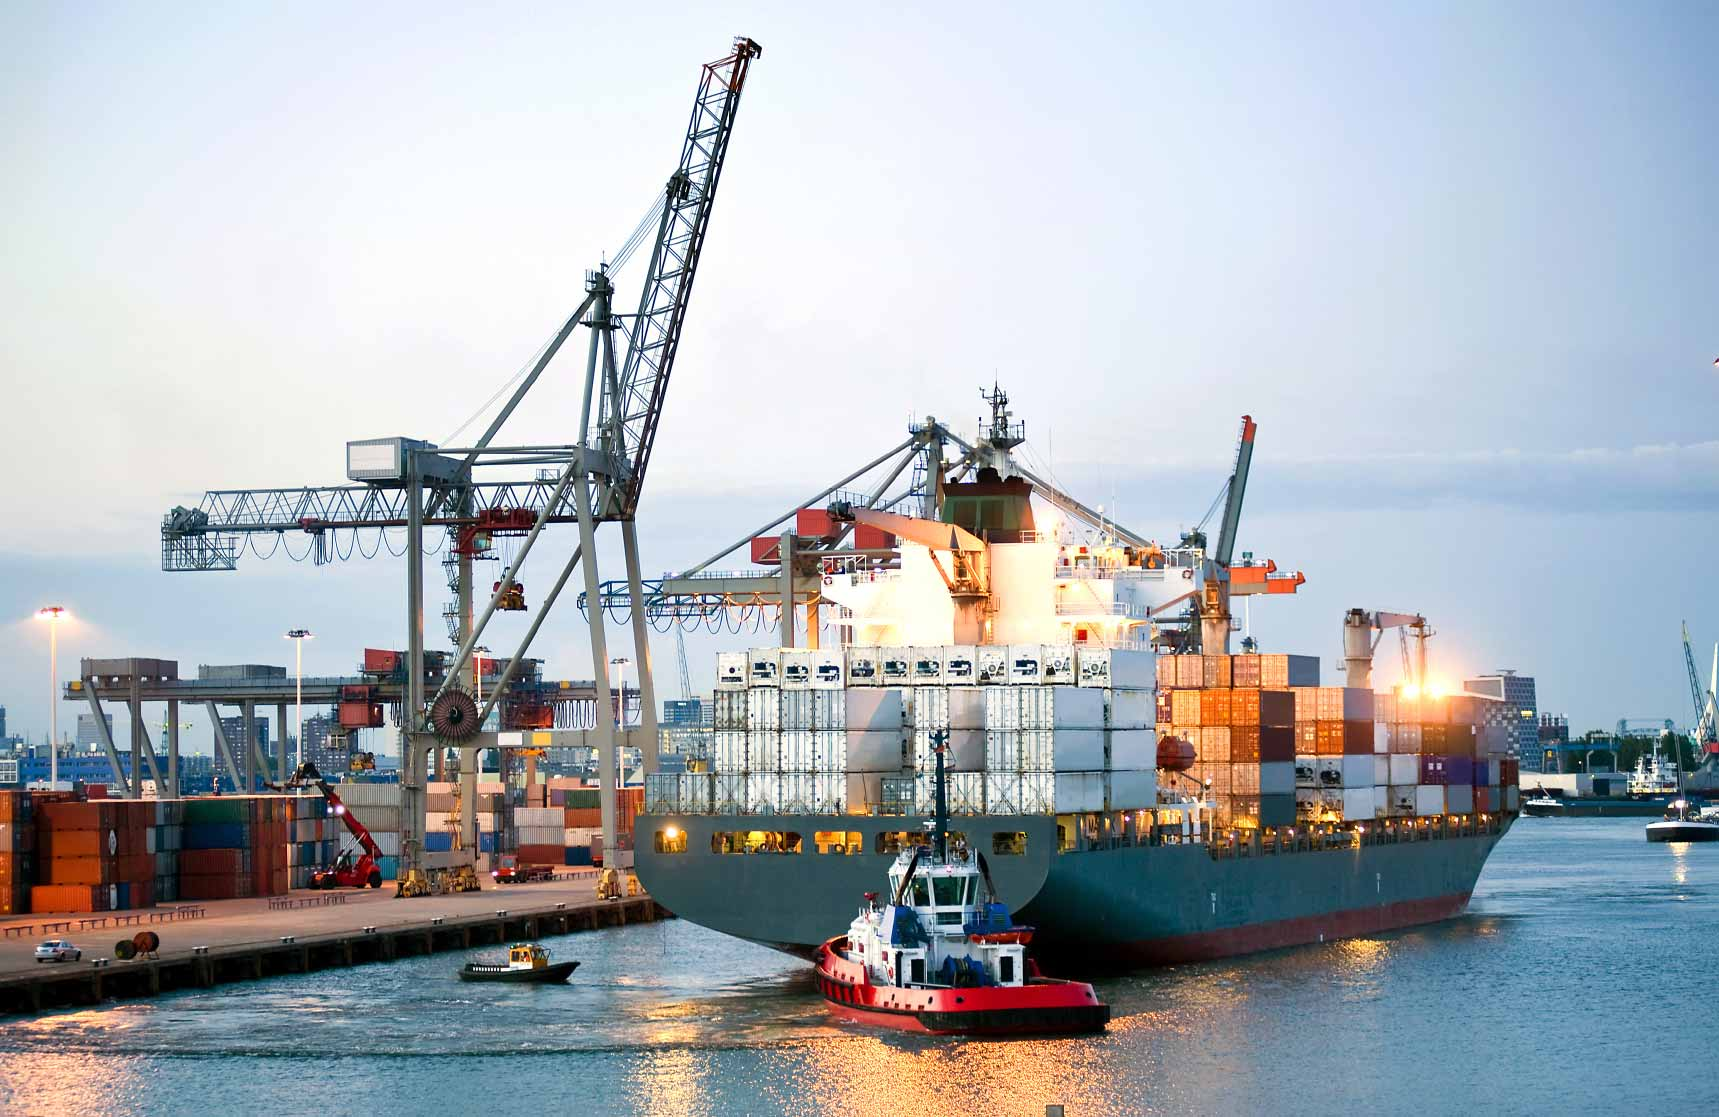 Merchandise trade balance in the first 5 months of 2021 is estimated to have a trade deficit of 369 million